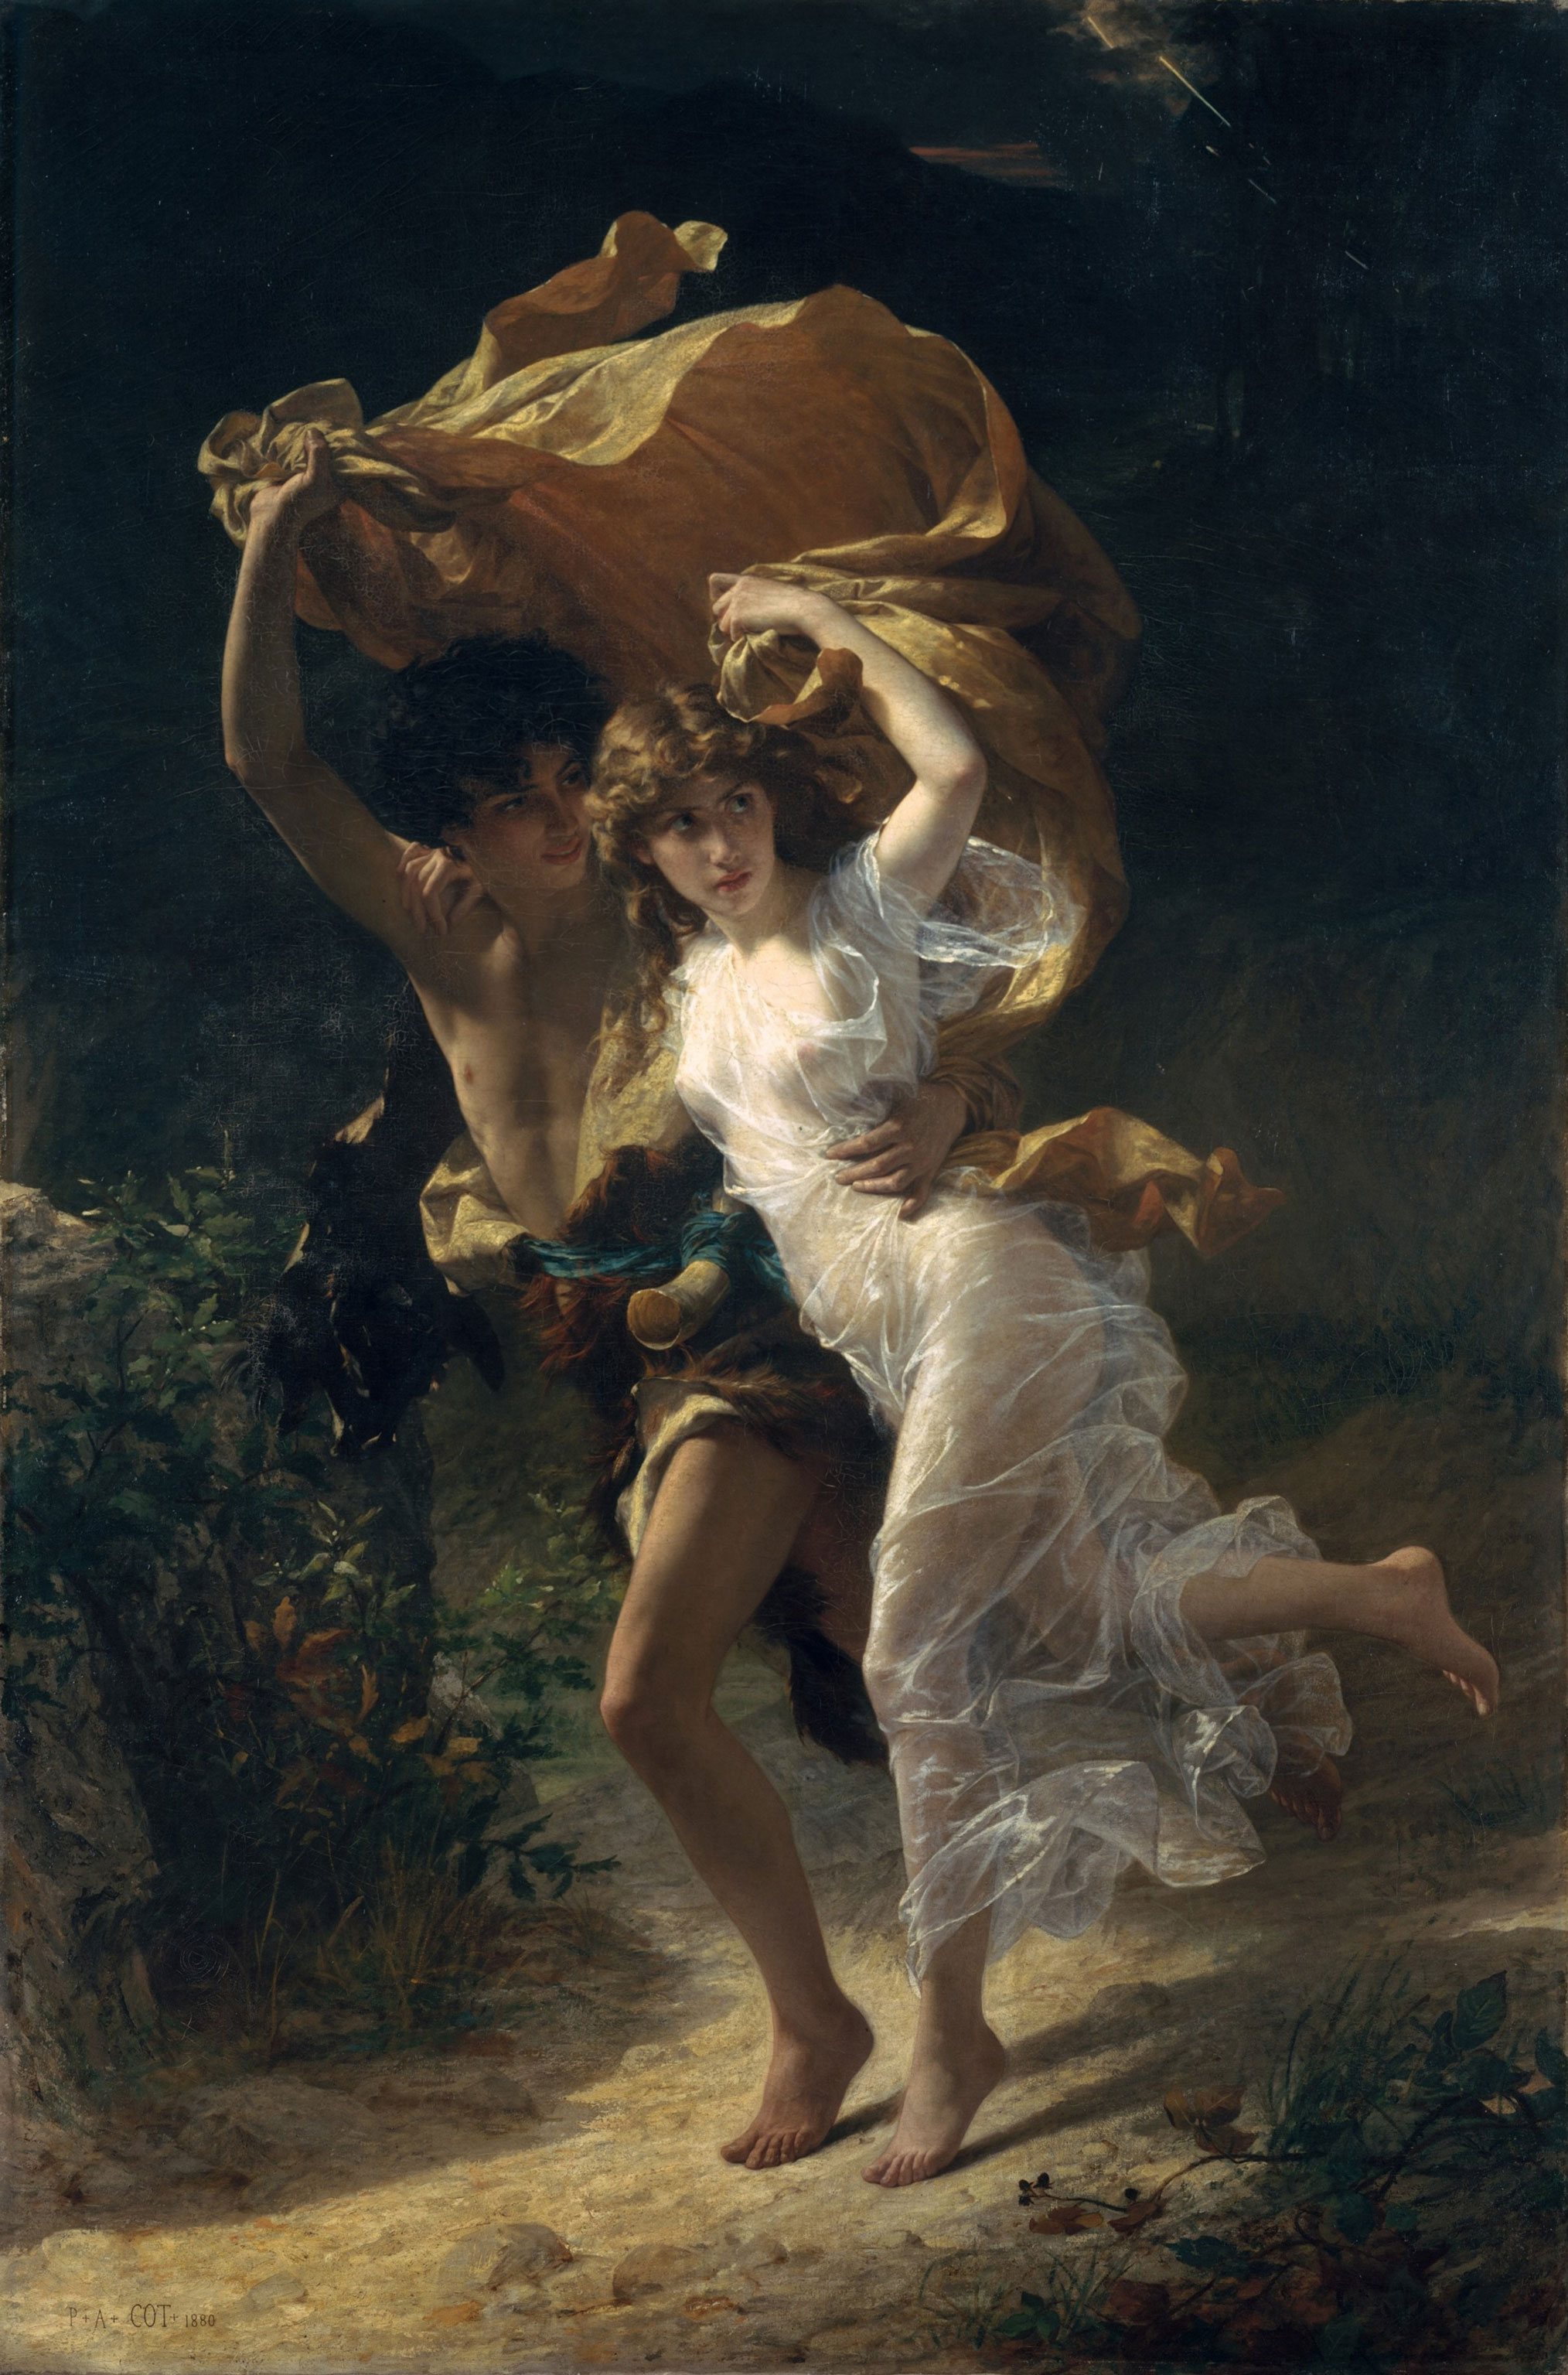 Romantic Paintings The Storm By Pierre Auguste Cot